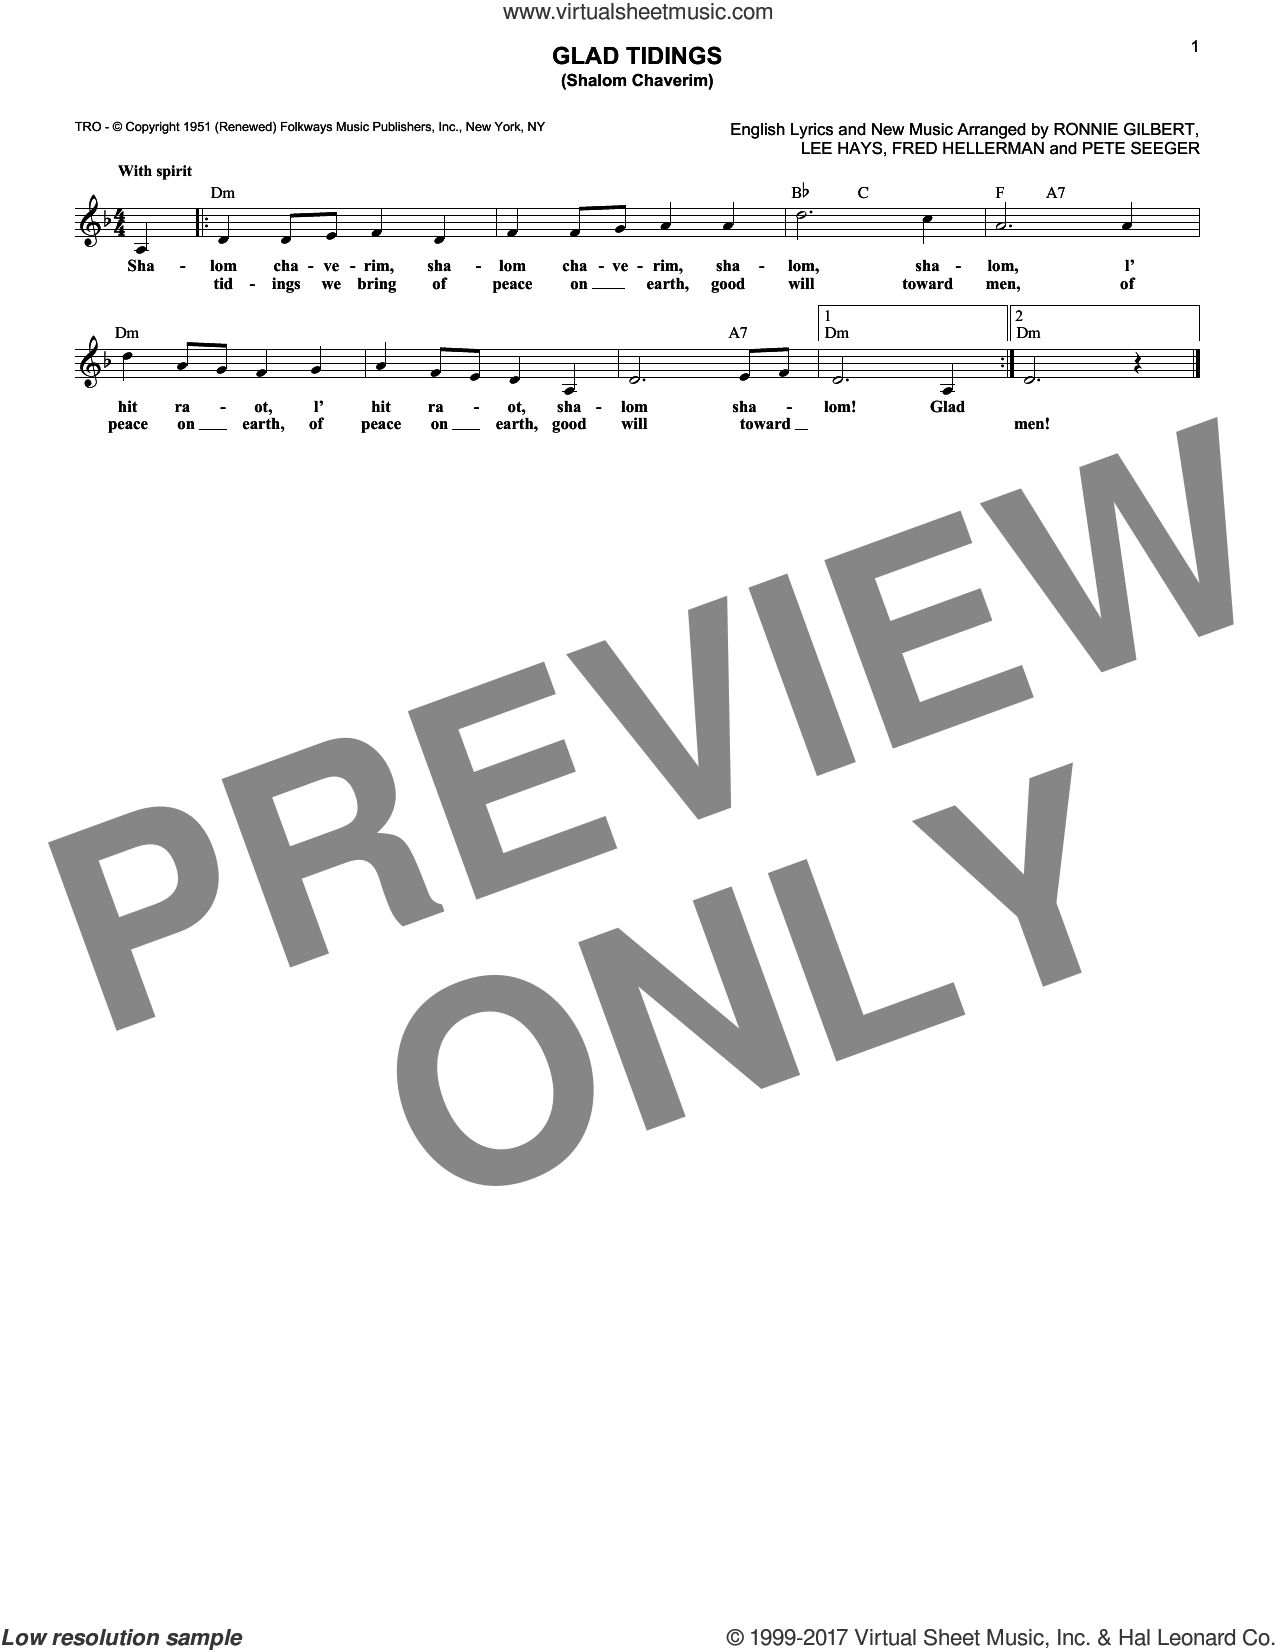 Glad Tidings (Shalom Chaverim) sheet music for voice and other instruments (fake book) by Pete Seeger, Fred Hellerman, Lee Hays and Ronnie Gilbert, intermediate skill level